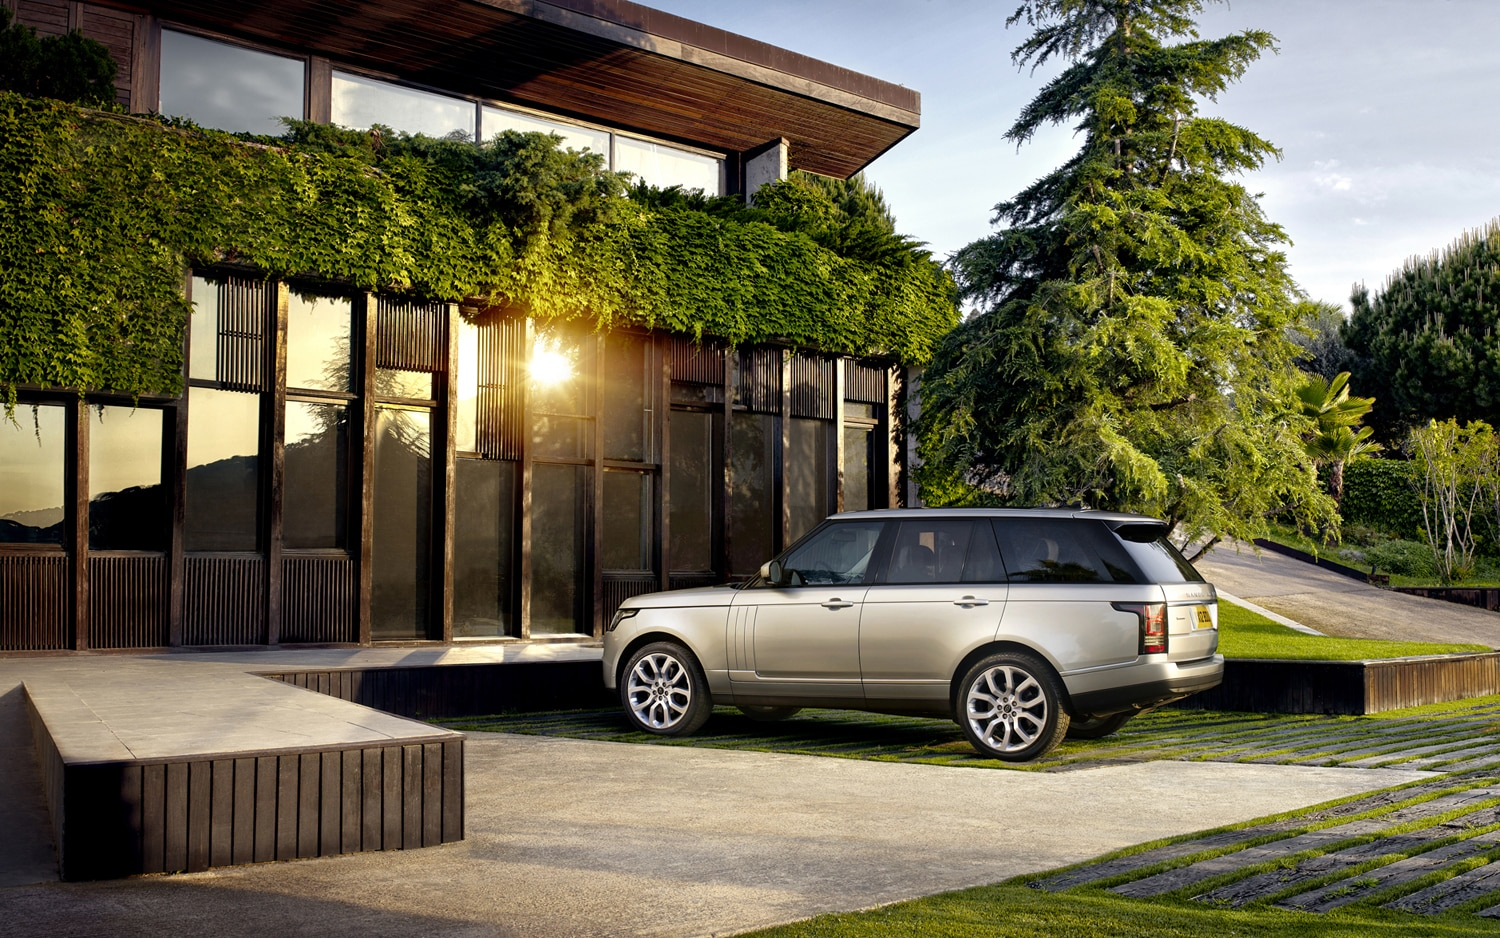 2013 Land Rover Range Rover Rear Three Quarter 4